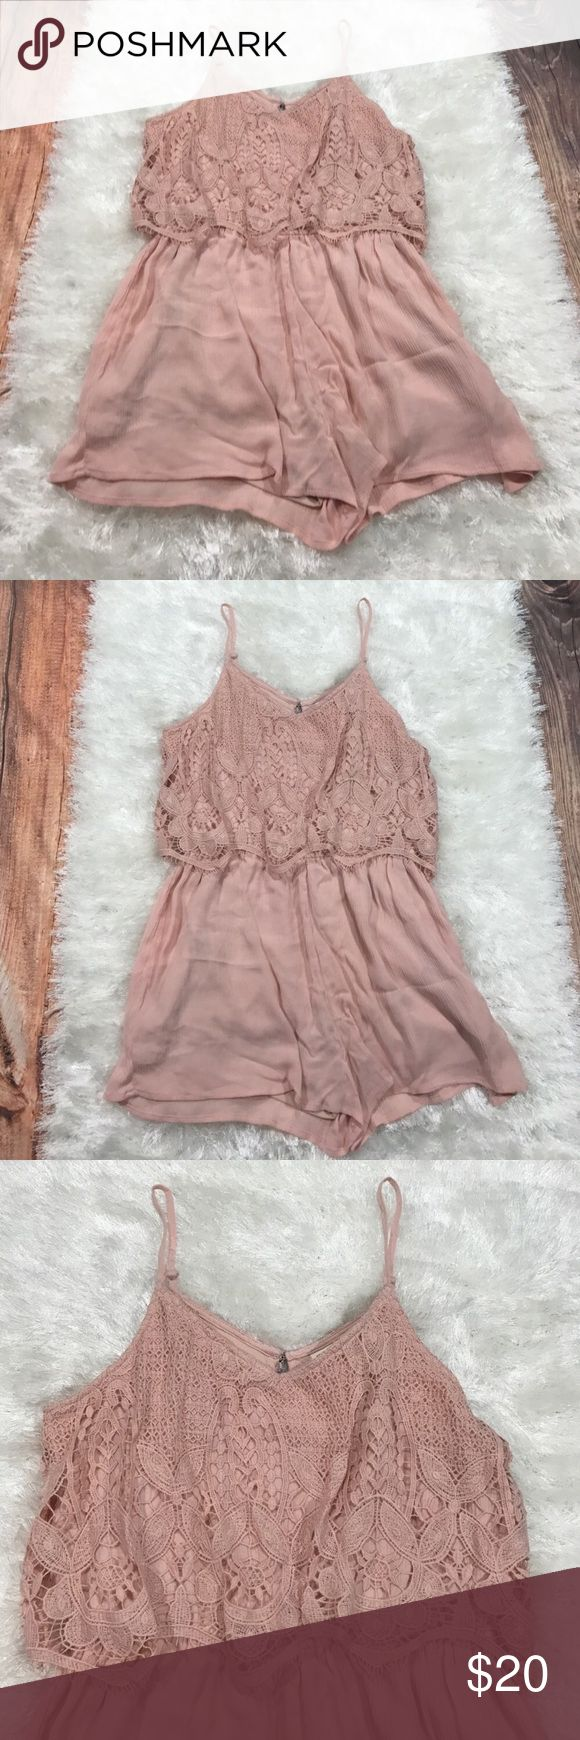 Ladies Mossimo Supply Co Light Pink Lace Romper Mossimo Supply Co Light Pink Lace Romper. Size Large. New without tags. Mossimo Supply Co Dresses